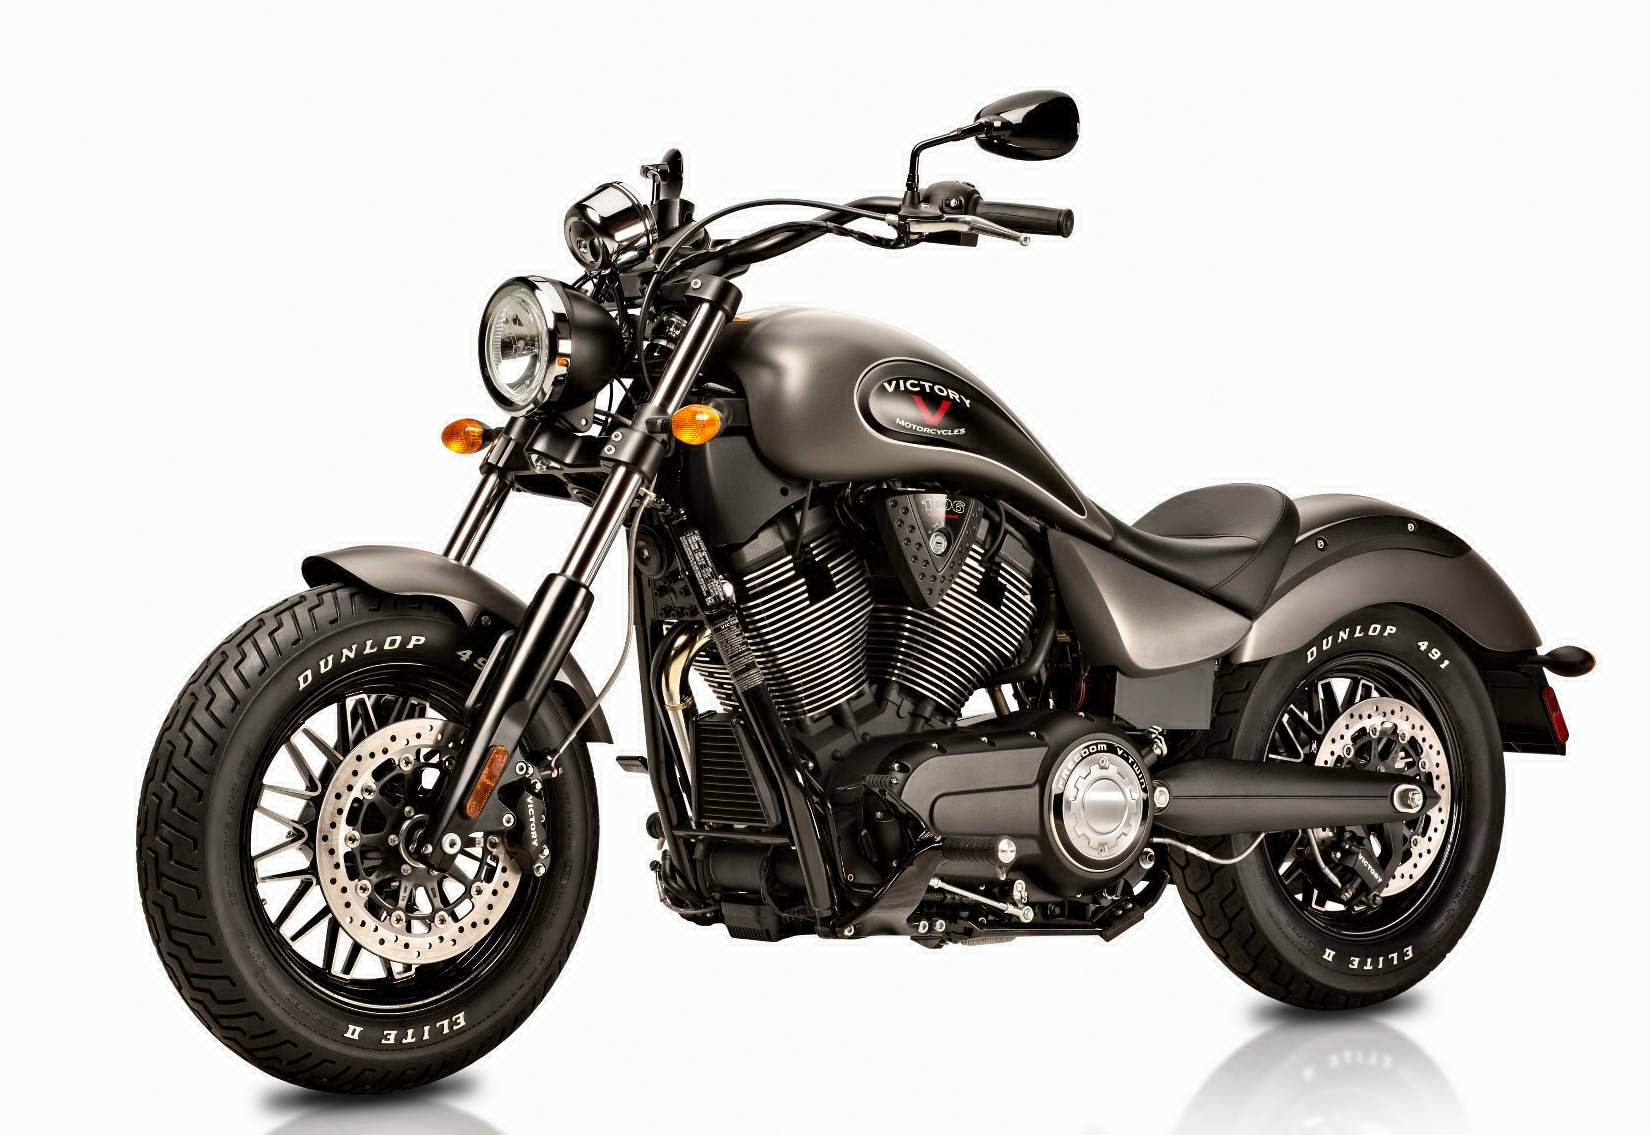 Victory Gunner Bobber technical specifications